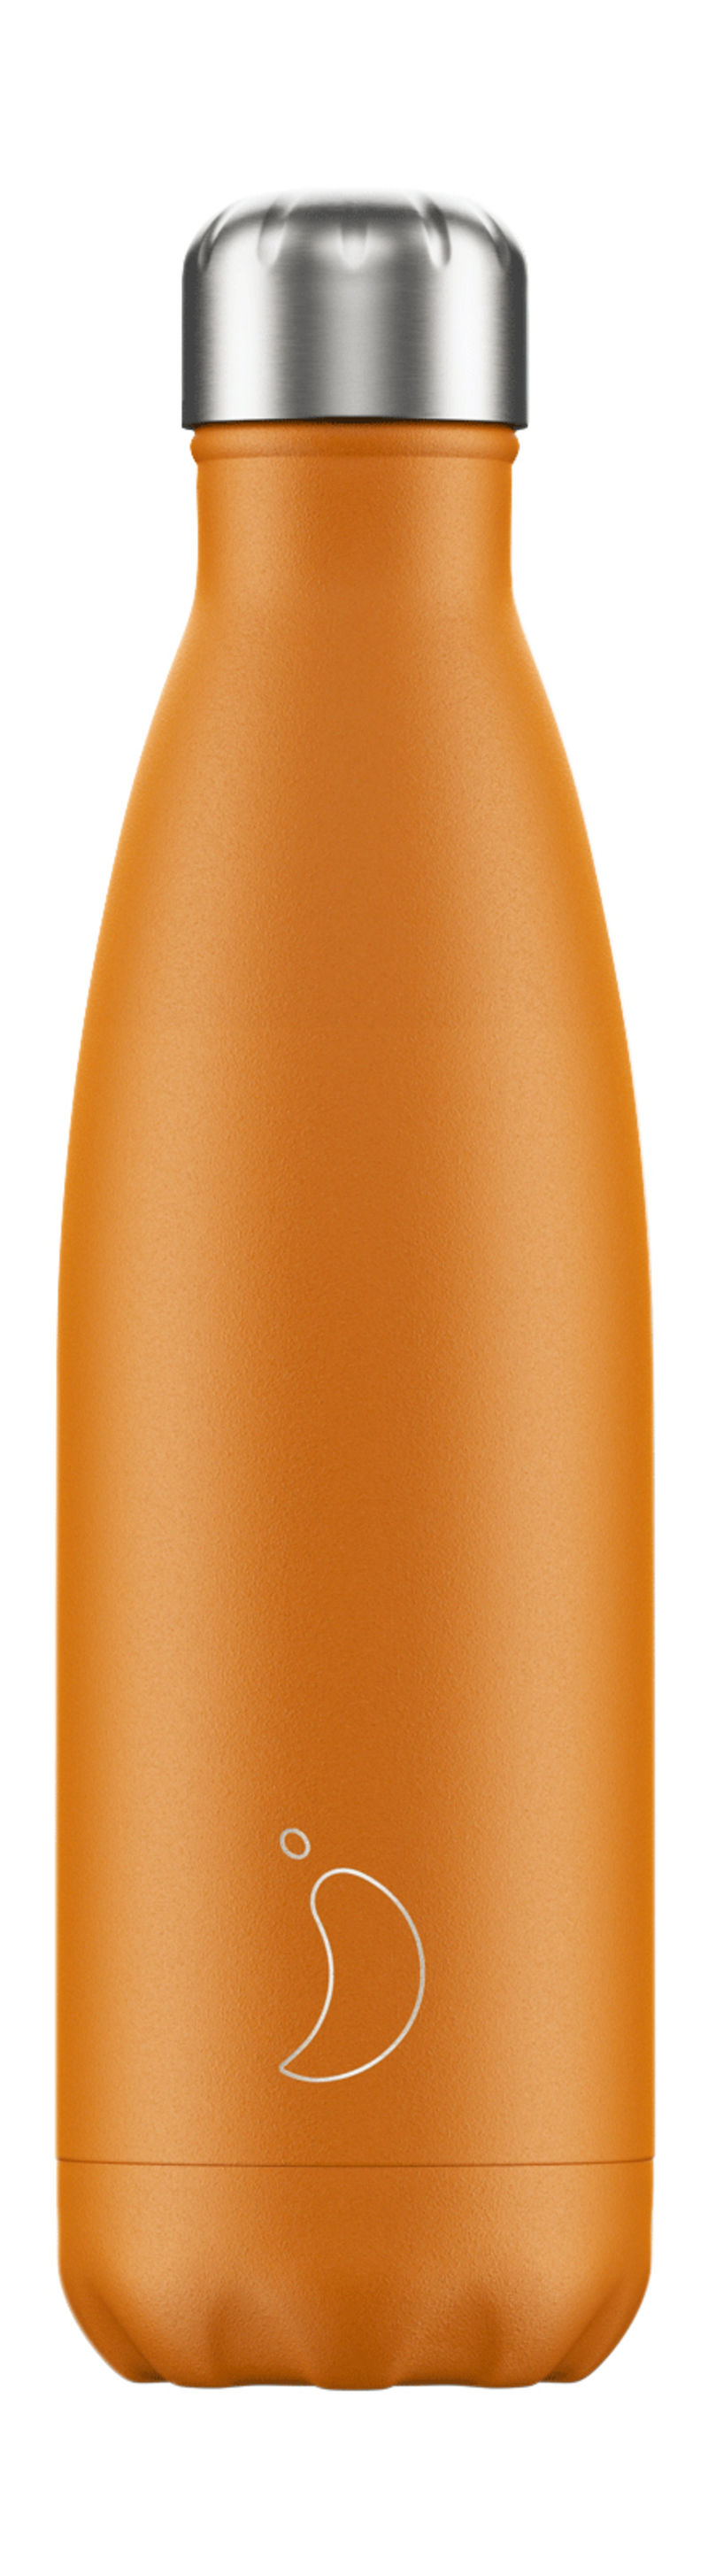 BOTELLA INOX NARANJA MATE 500ML